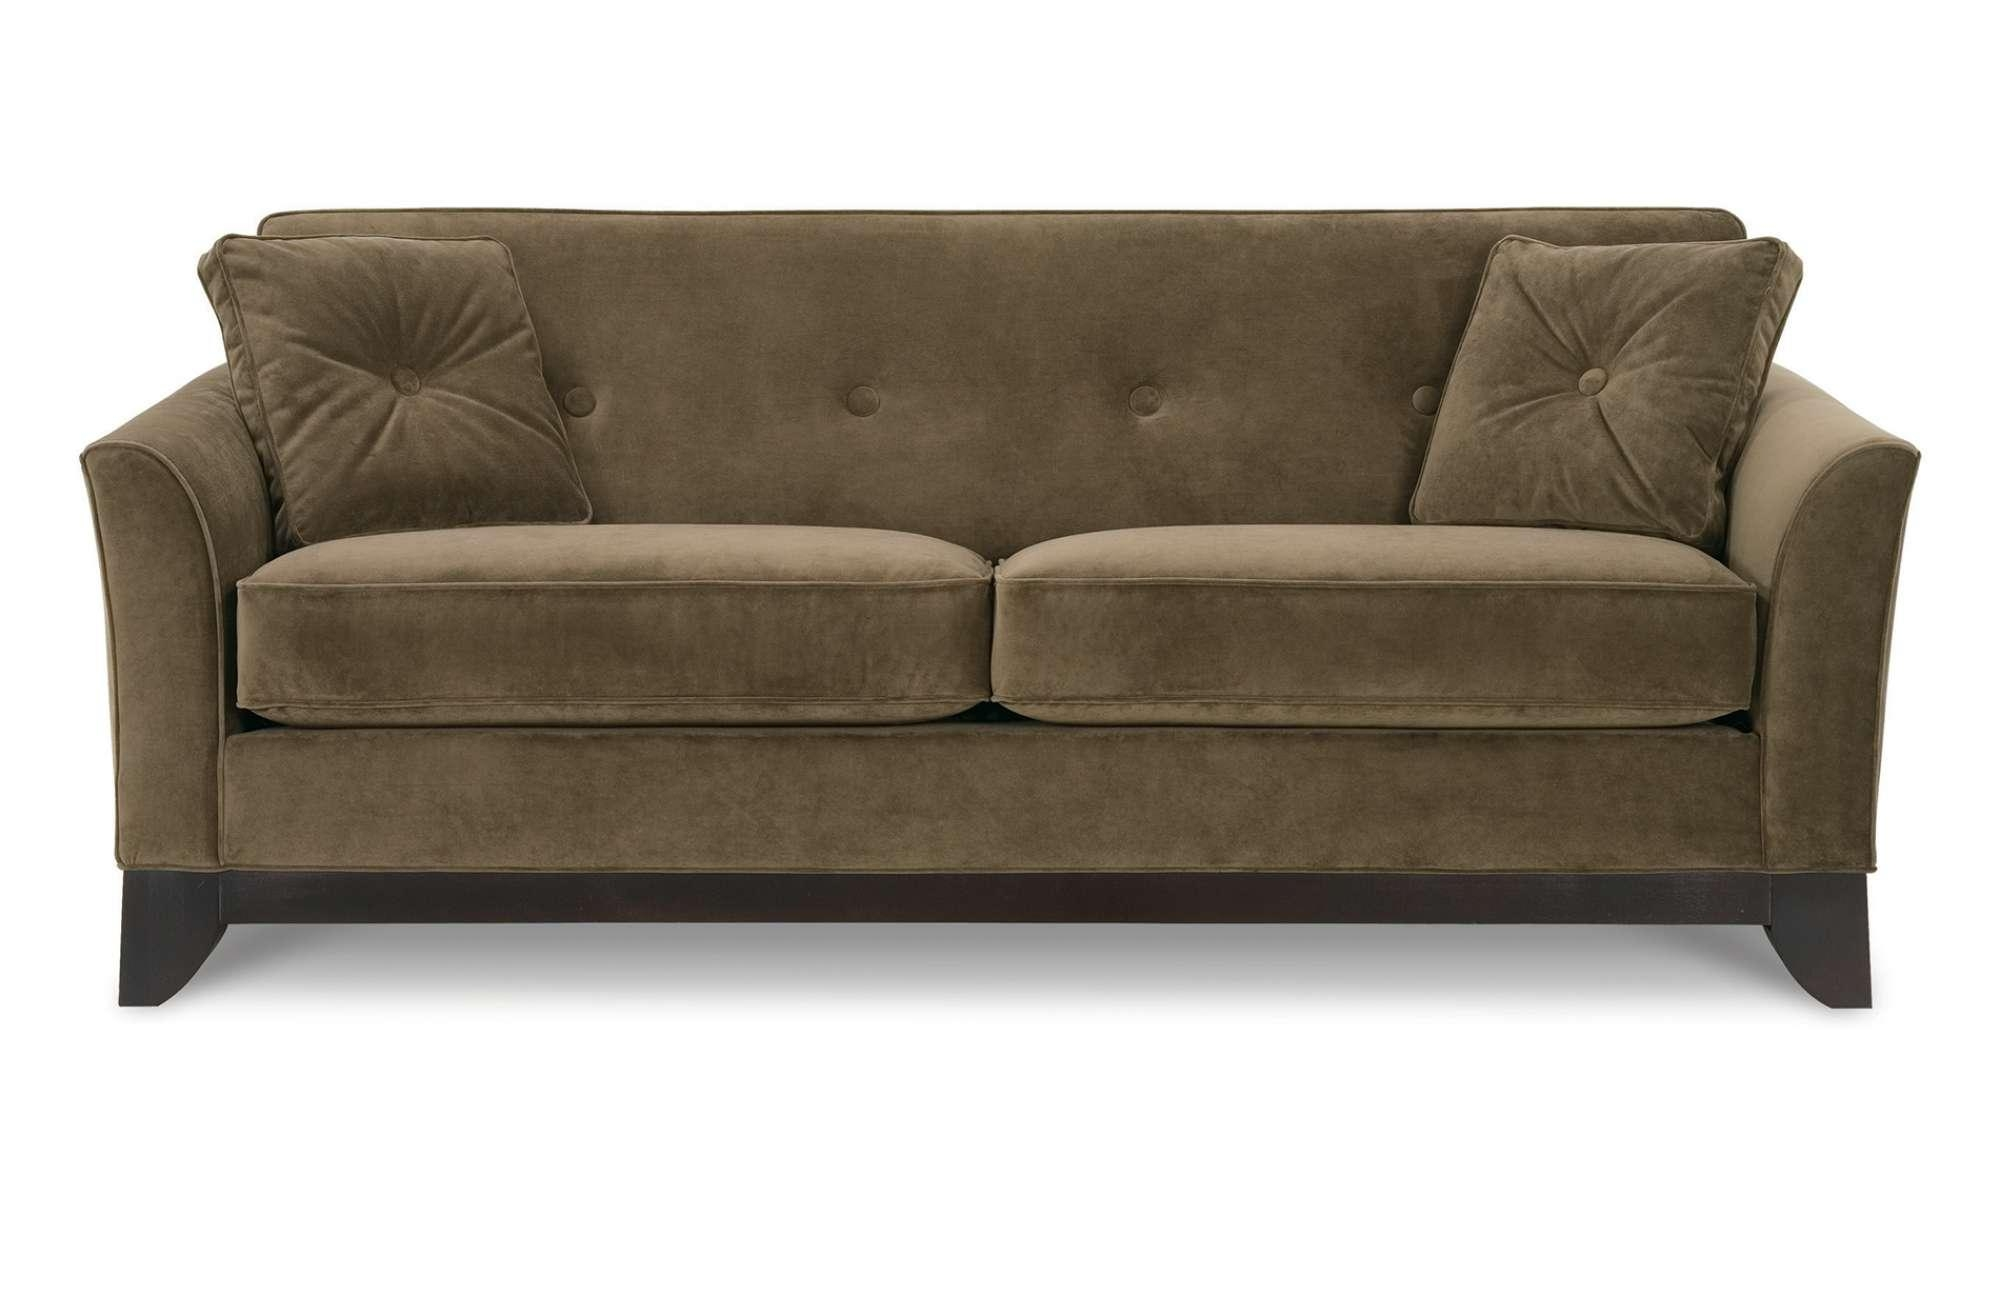 Sofas Center : Fancy Sofa Set Sets Singular Photo Ideas 1200Px Web For Fancy Sofas (Image 17 of 20)